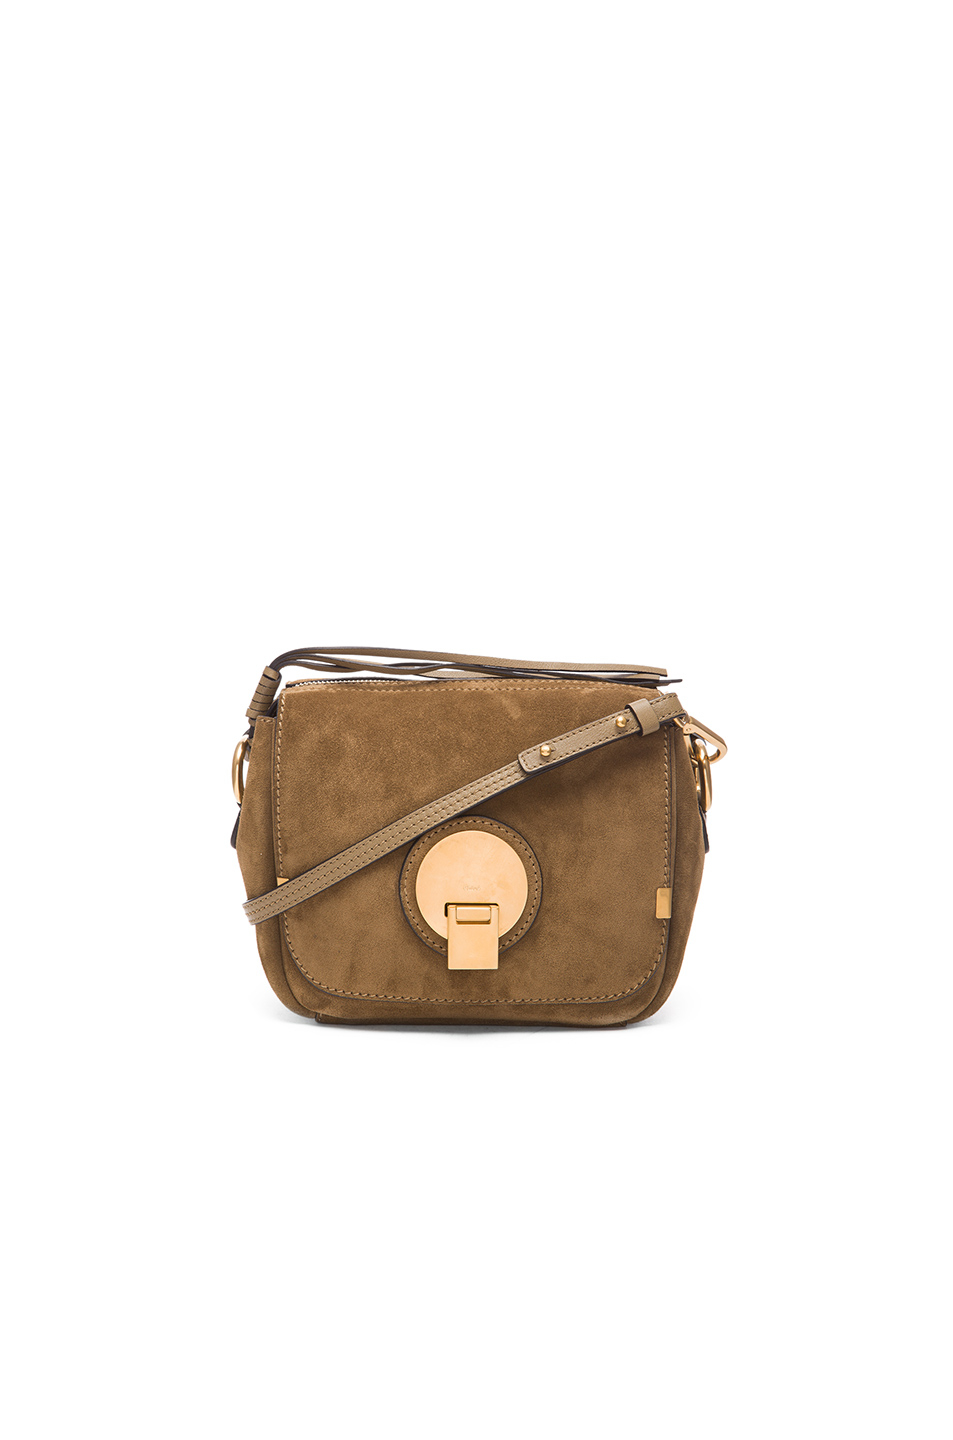 INDY CAMERA BAG IN SUEDE CALFSKIN